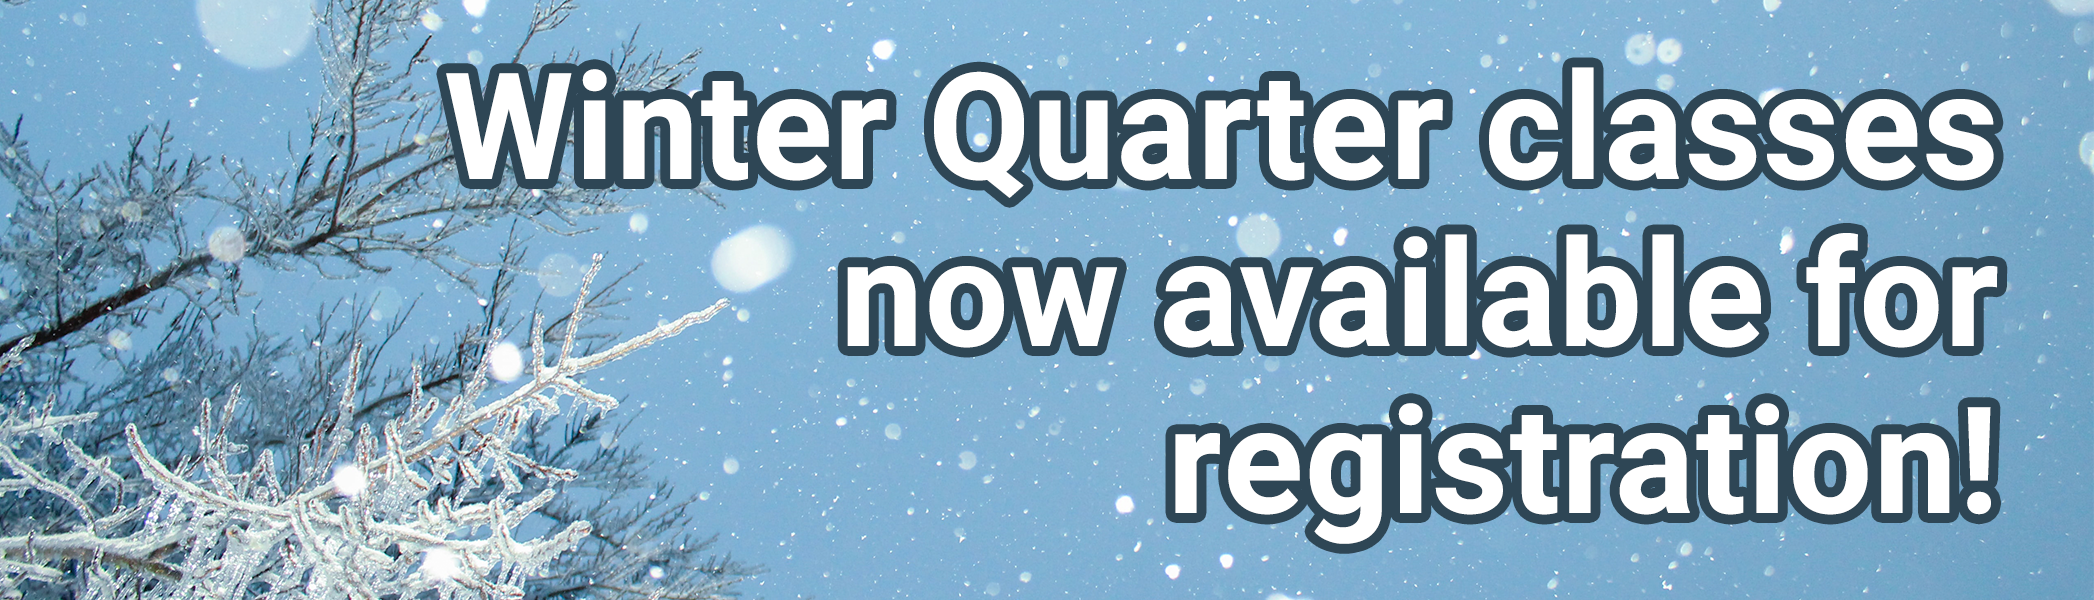 Winter Quarter classes now available for registration!